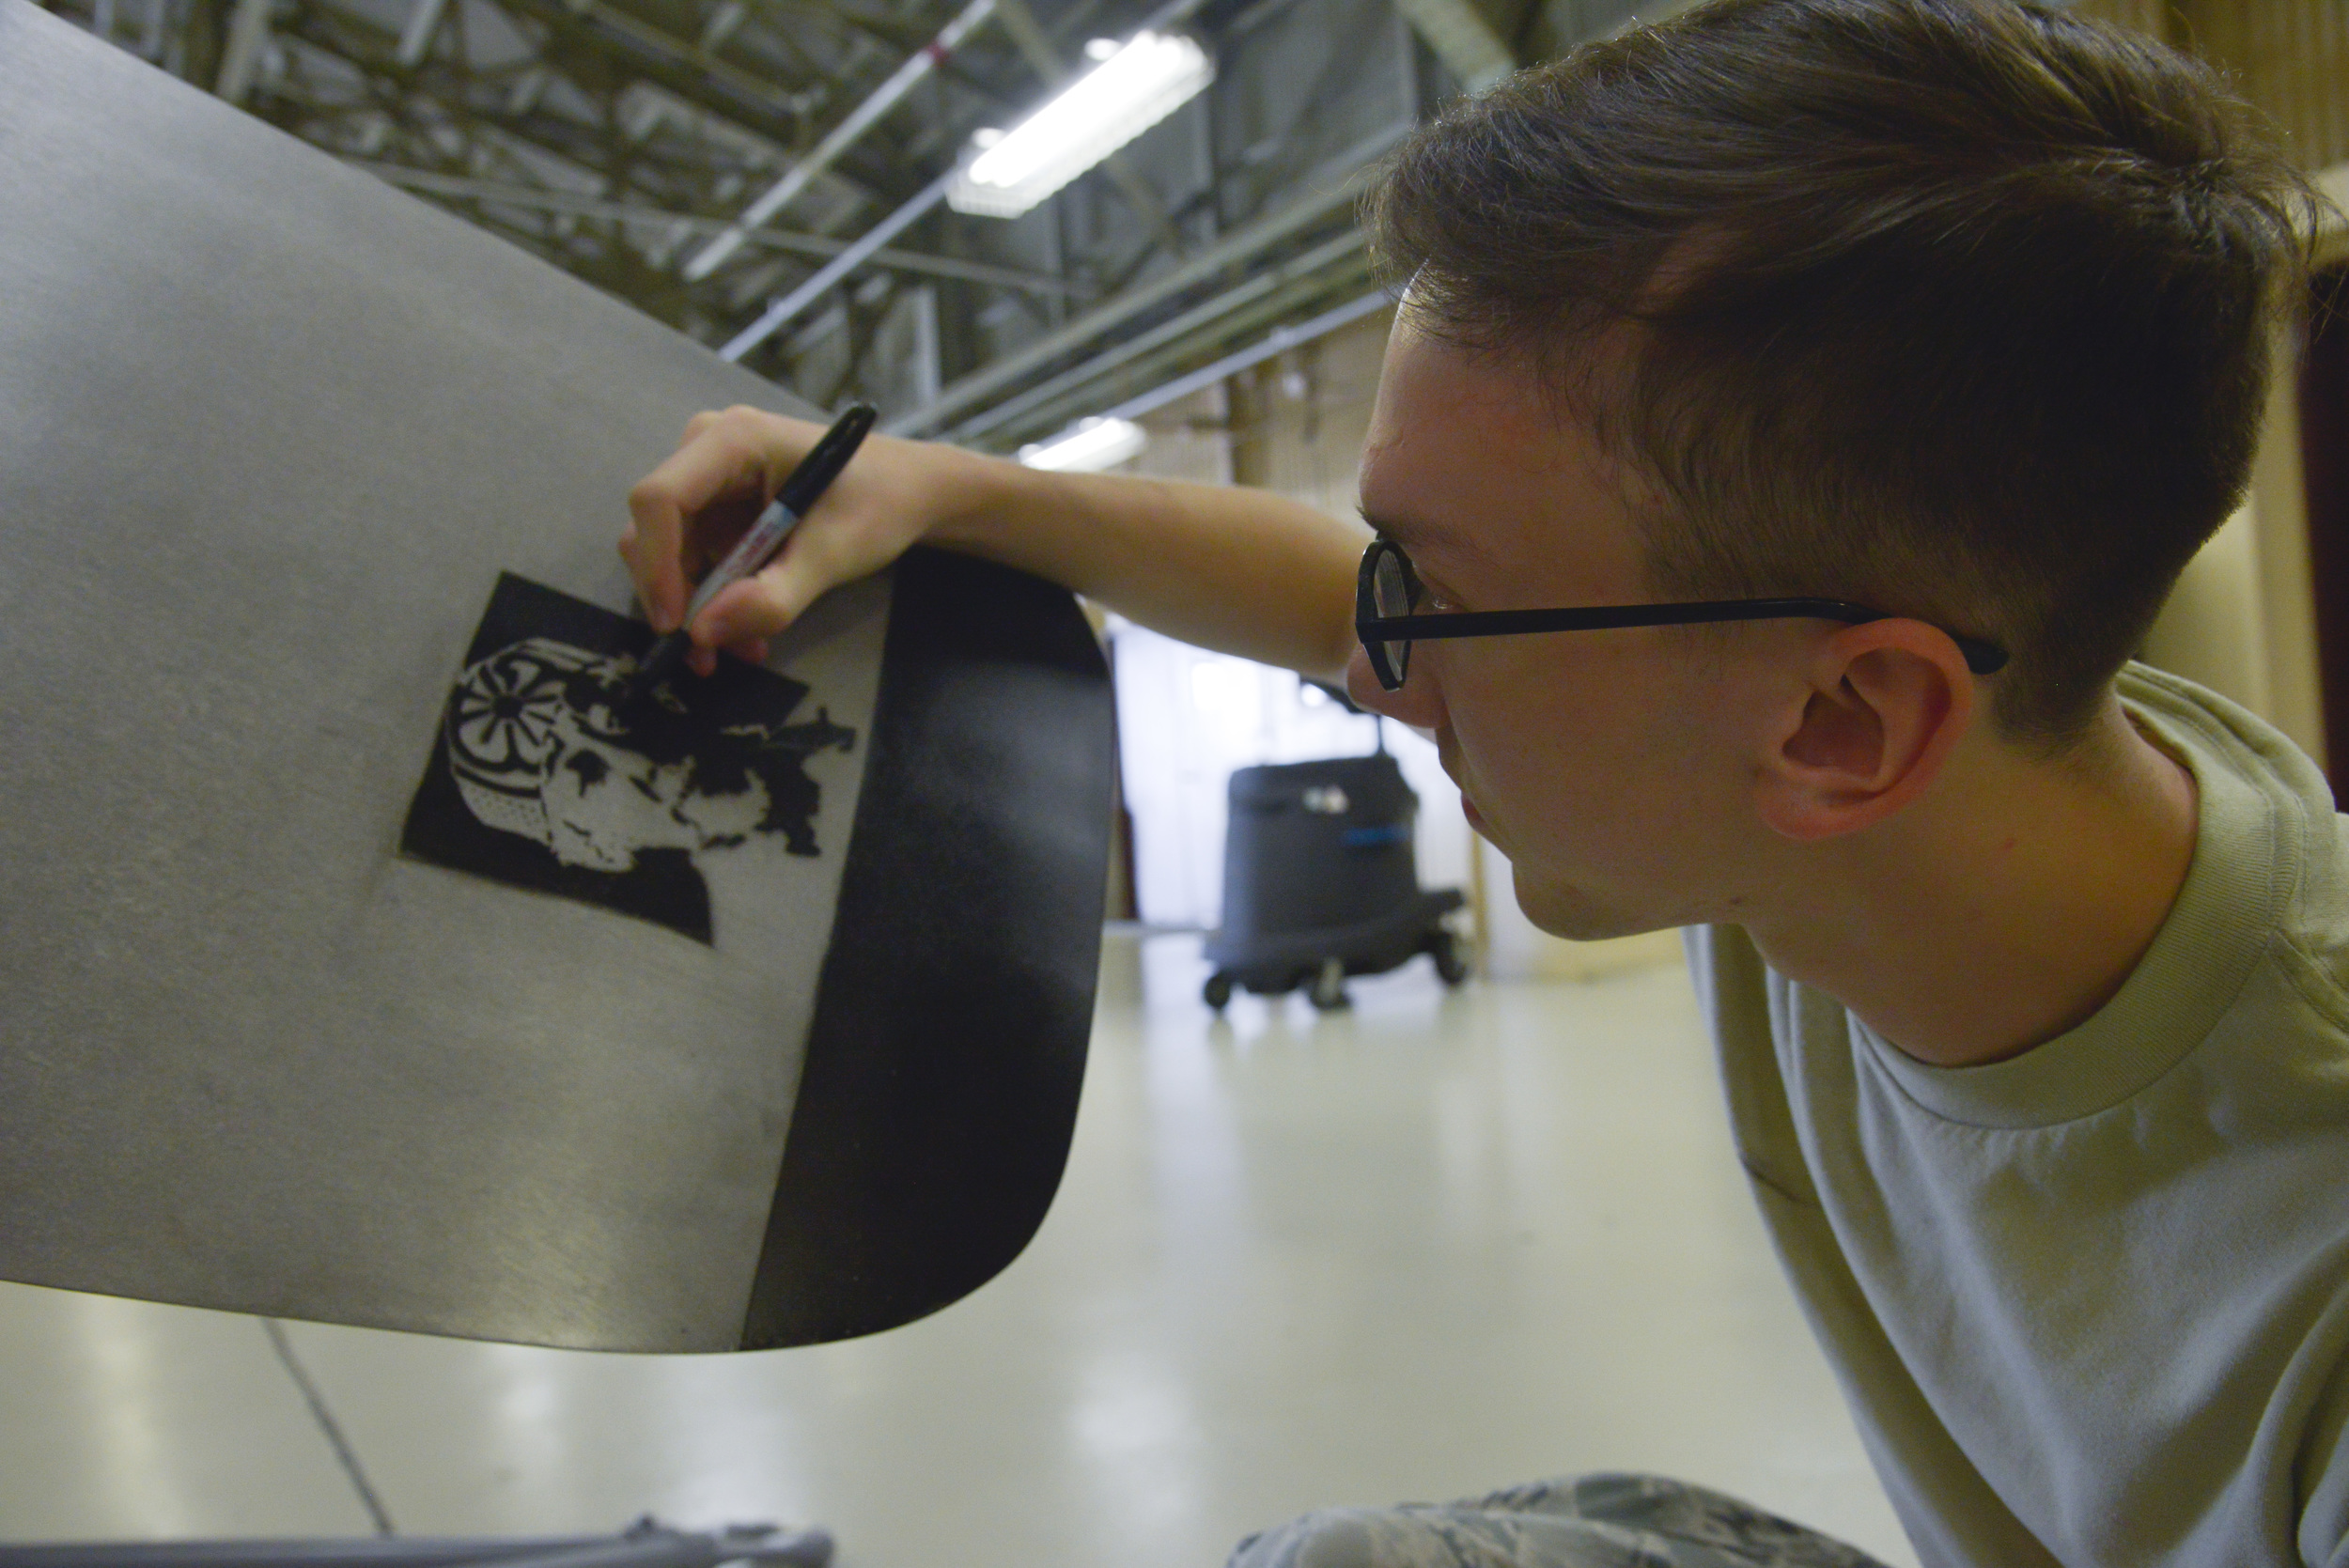 Airman 1st Class Kyle Cazier, 374th Maintenance Squadron propulsion flight aerospace propulsion apprentice, darkens part of a 'Mr. Miyagi' drawing on a propeller blade at Yokota Air Base, Japan, Sept. 23, 2015. The drawing is a reference point on the number three blade to ensure the number one blade is kept pointing up, preventing hydraulic fluid leaks. (U.S. Air Force photo by Senior Airman David Owsianka/Released)